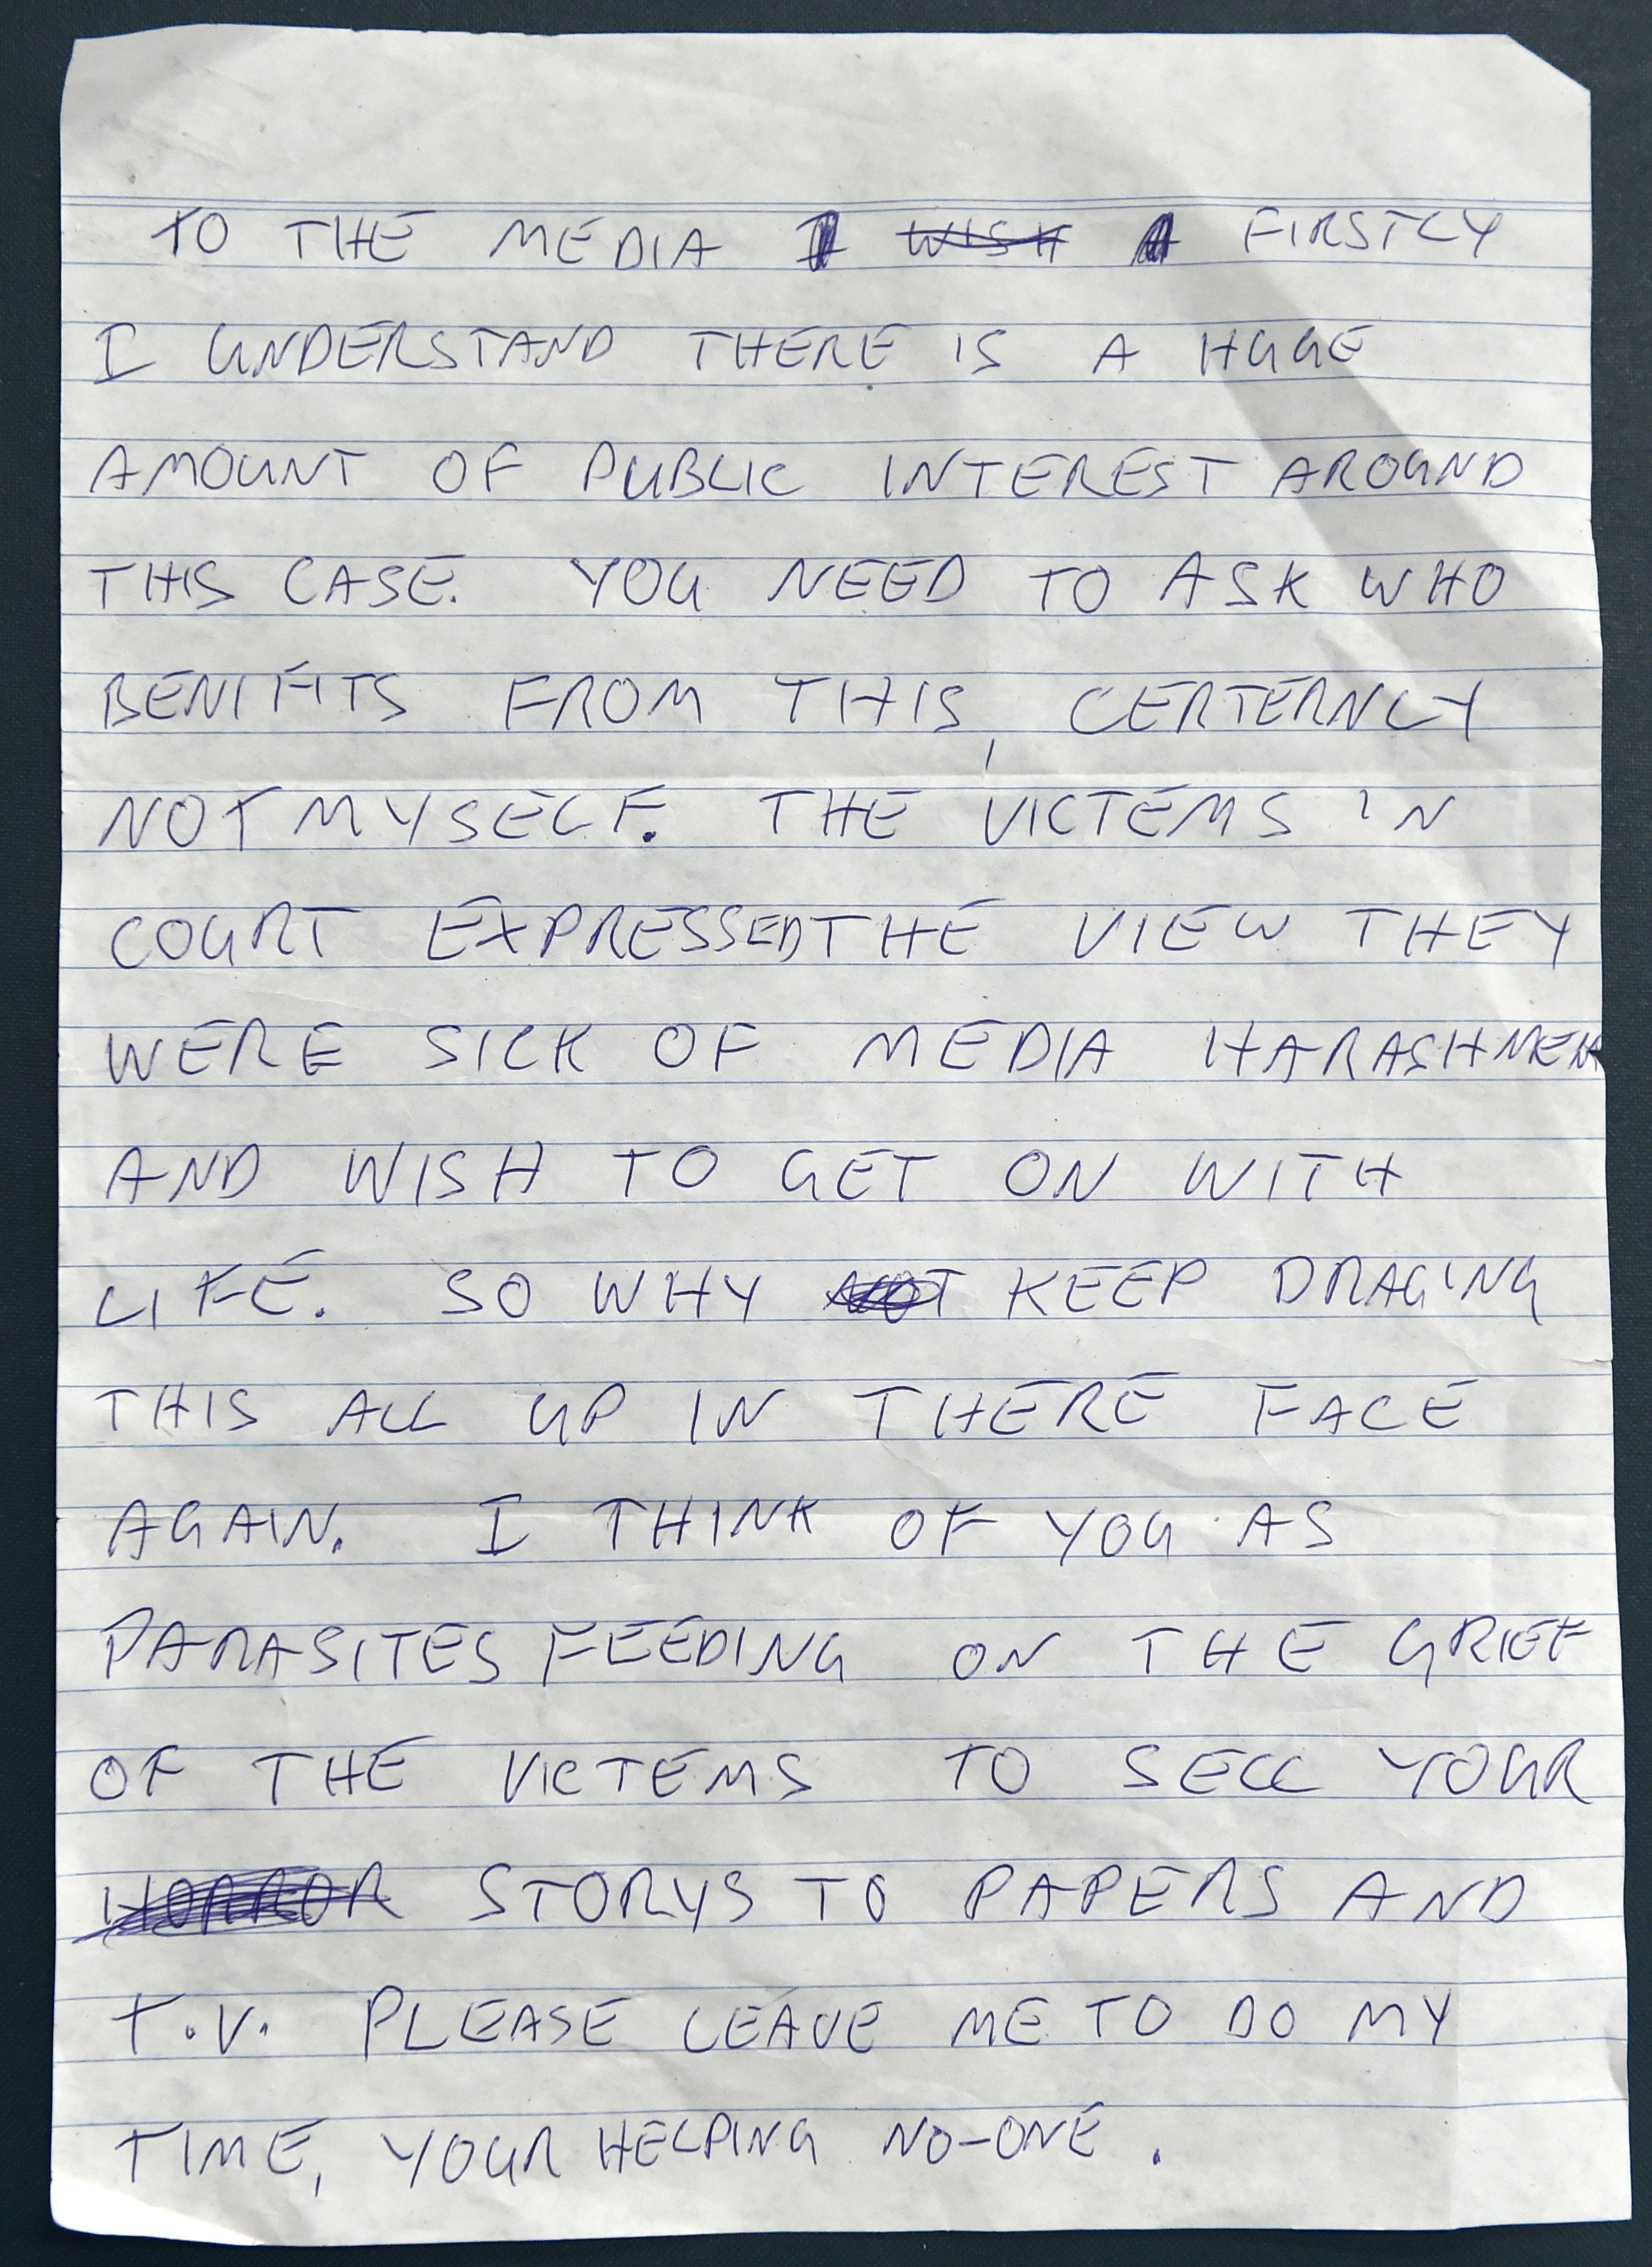 The letter sent by Reg Ozanne to the ODT.